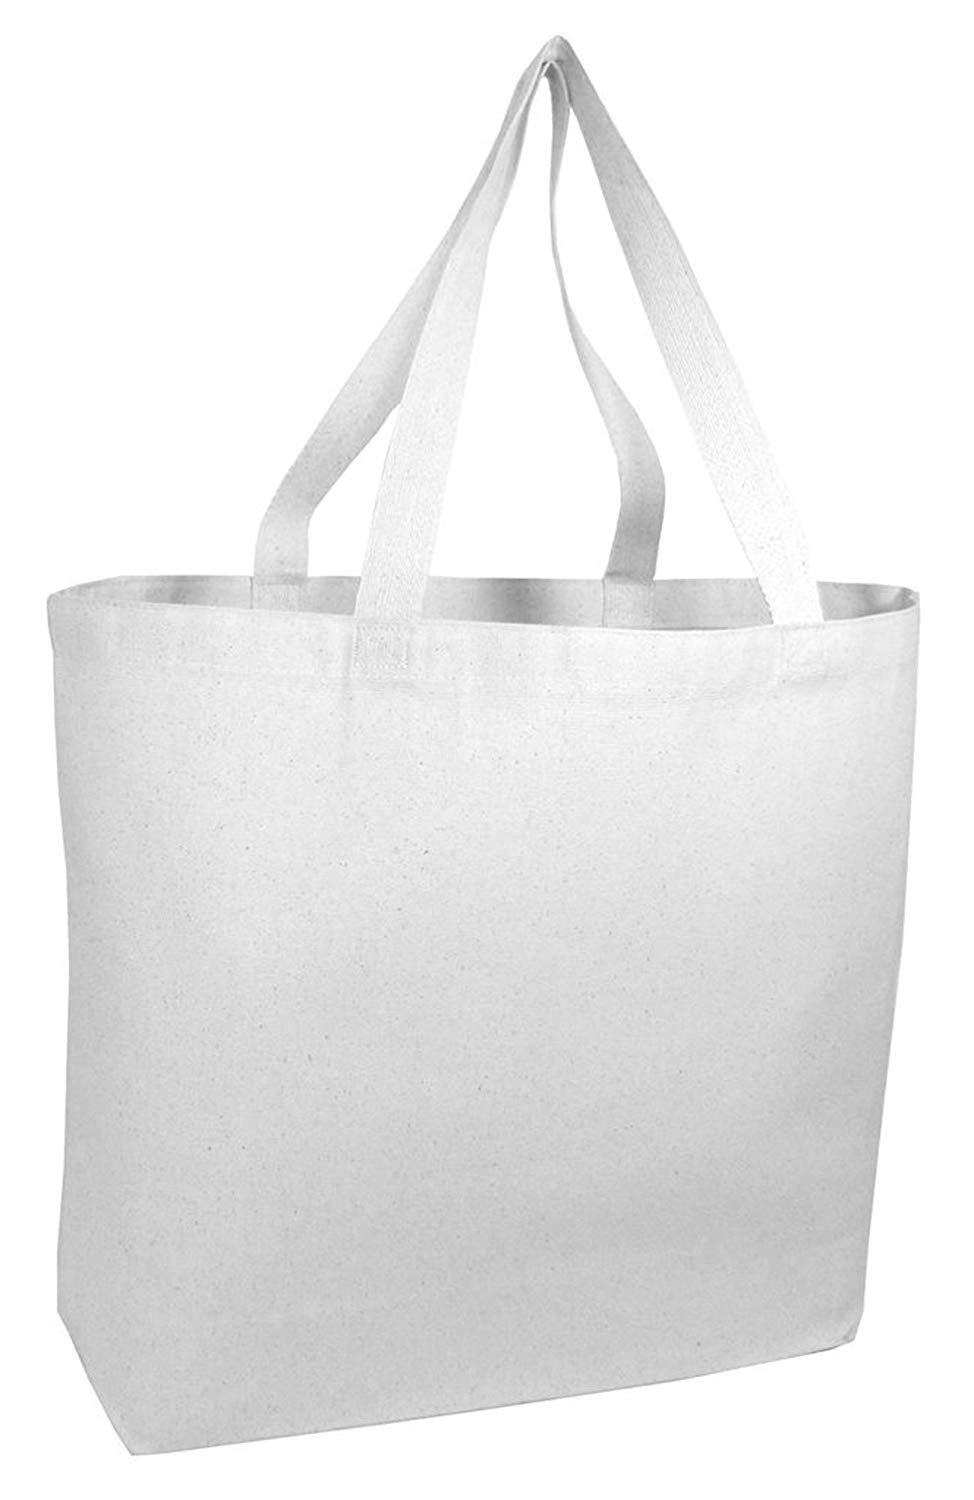 c0abcaa223e Get Quotations · 12 PACK Large Heavy Canvas Beach Tote Bag Boat Bag - Canvas  Deluxe Tote Bags BULK